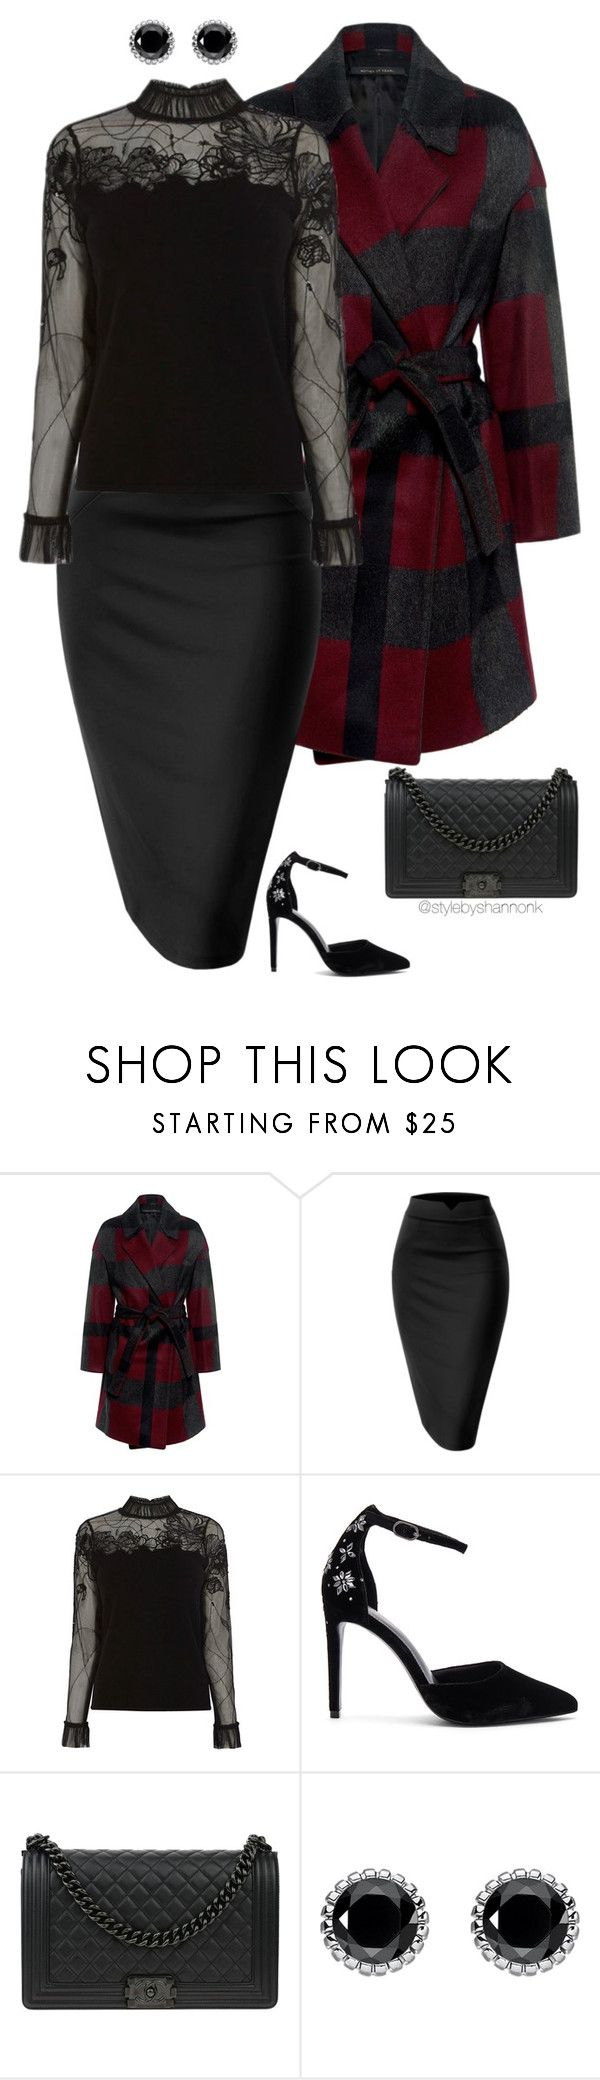 """""""Women's Fashion"""" by stylebyshannonk on Polyvore featuring Mother of Pearl, Rachel Zoe, Chanel and Thomas Sabo"""